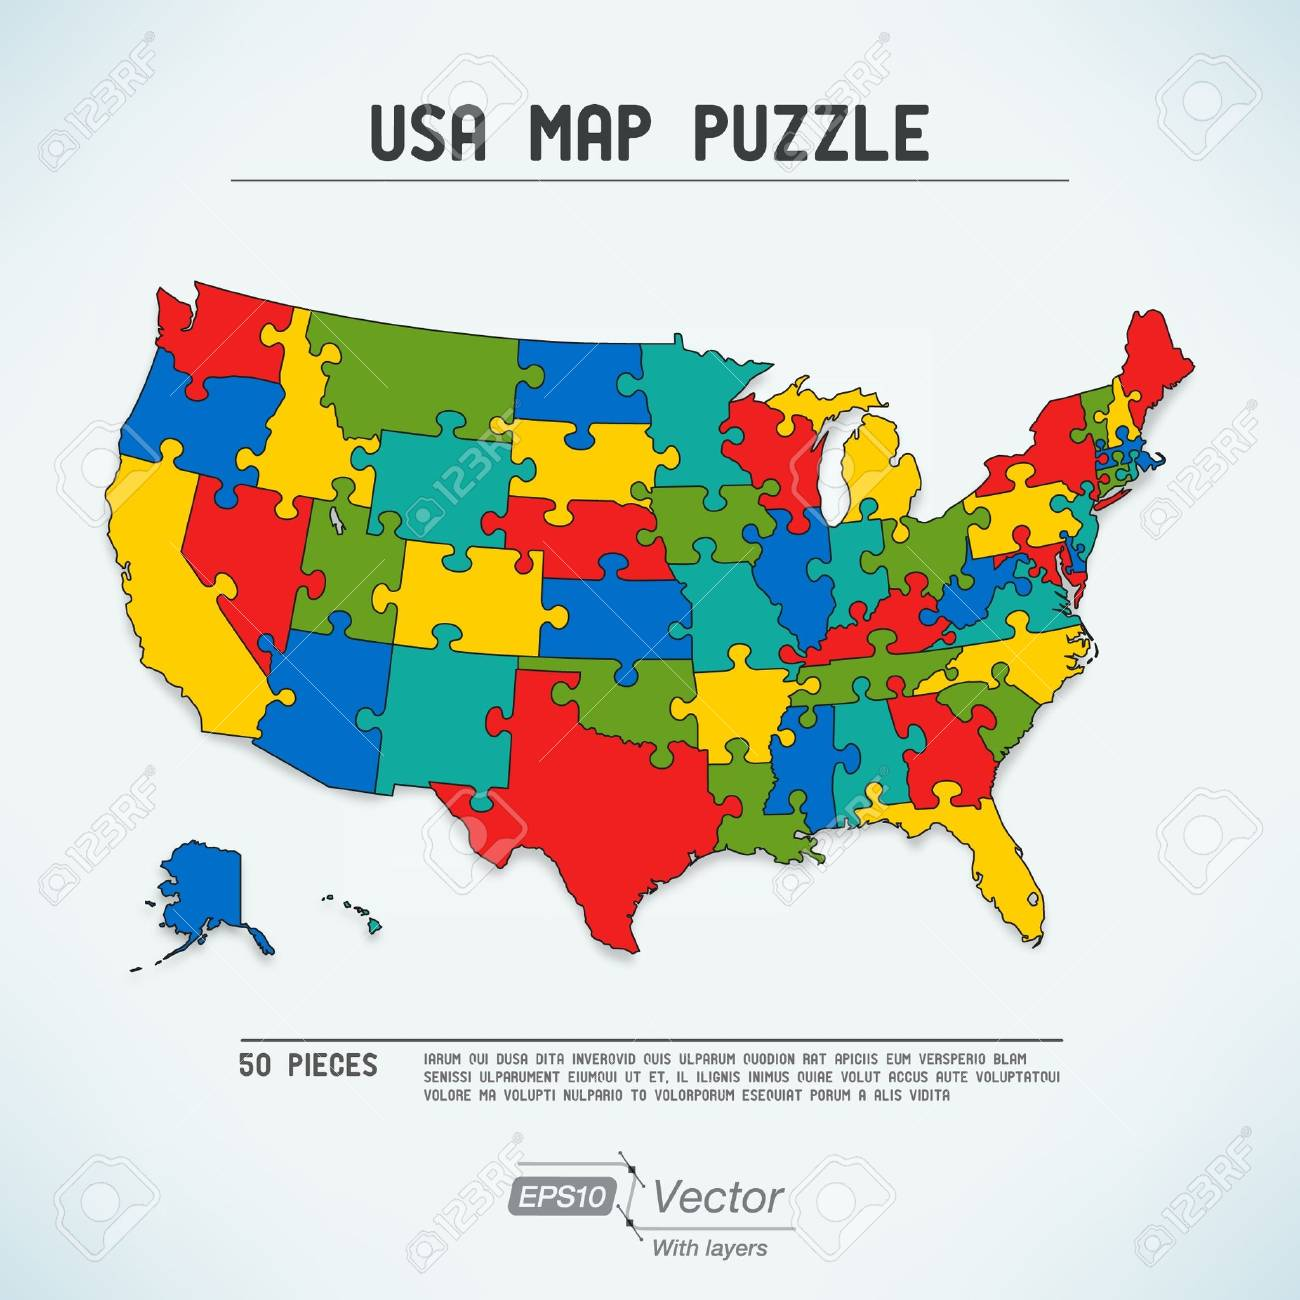 USA Map Puzzle Royalty Free Cliparts, Vectors, And Stock ...